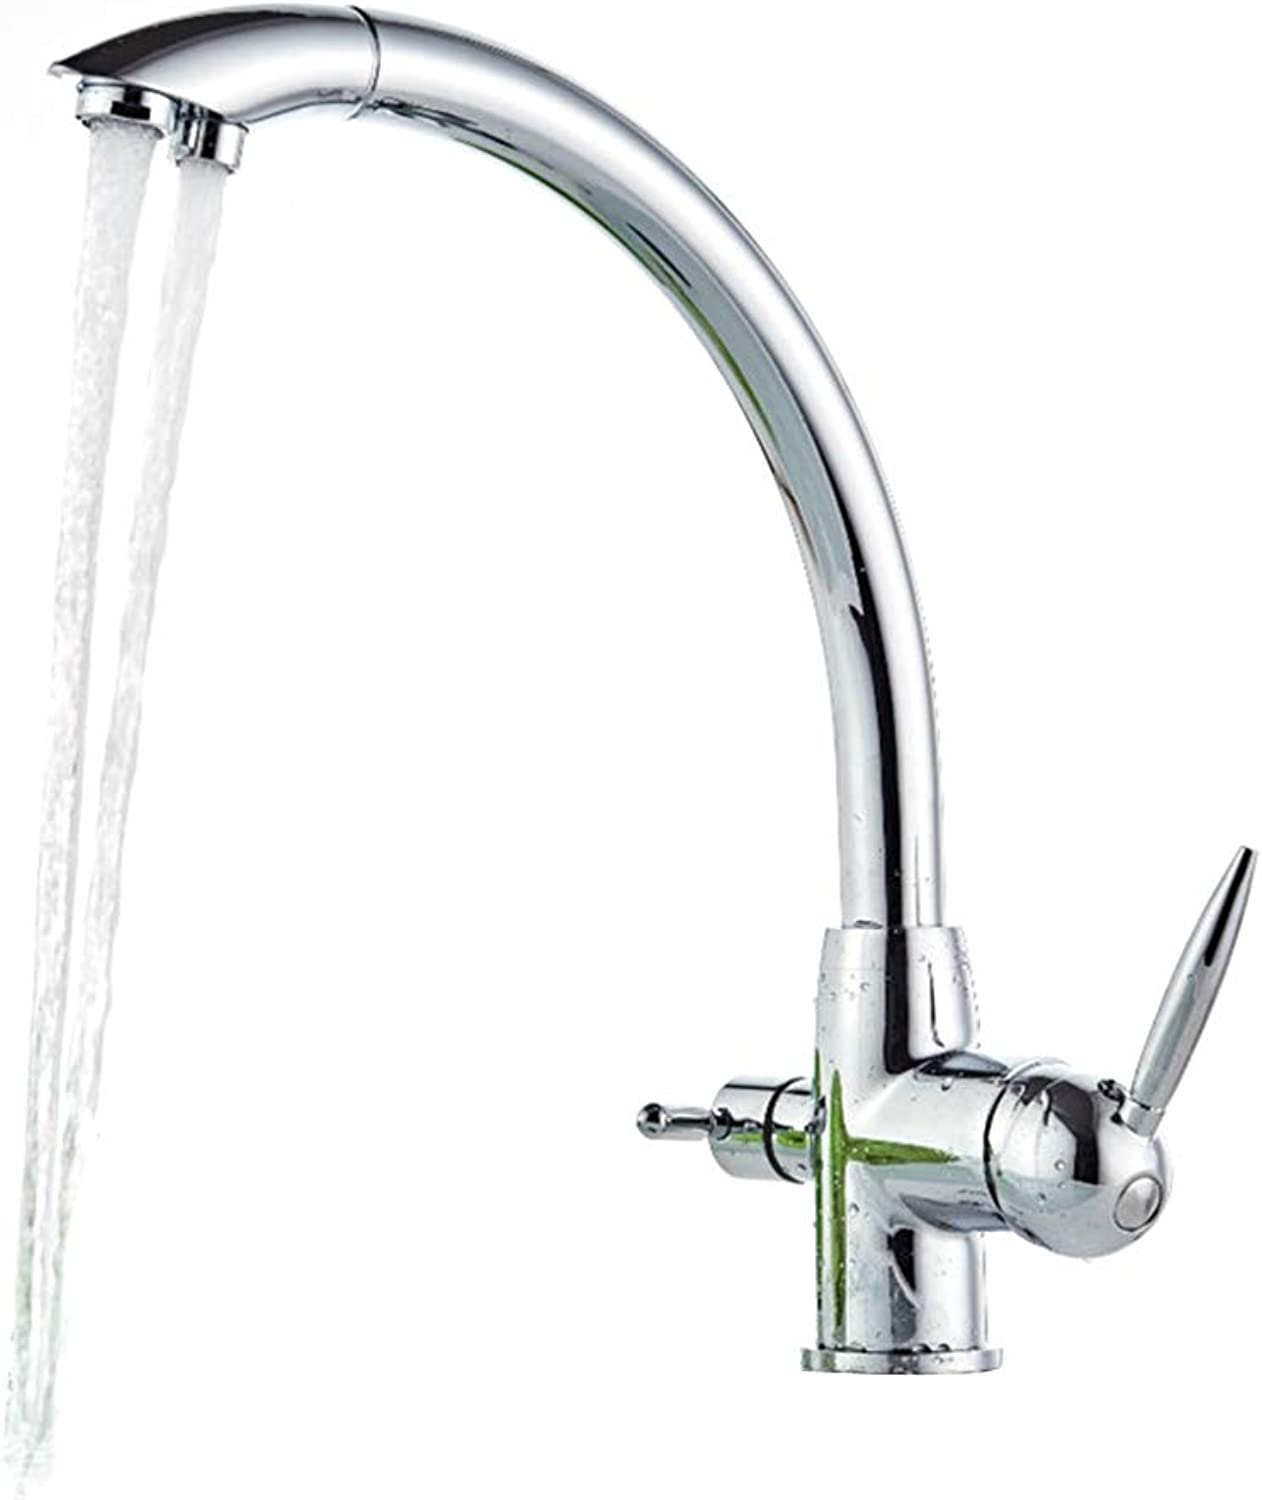 Kitchen Sink Faucet-360 Degree Swivel Modern Hot& Cold Mixer Two-Handle Single Hole Two Outlets Faucet, Easy Inssizetion Kitchen Taps,Chrome